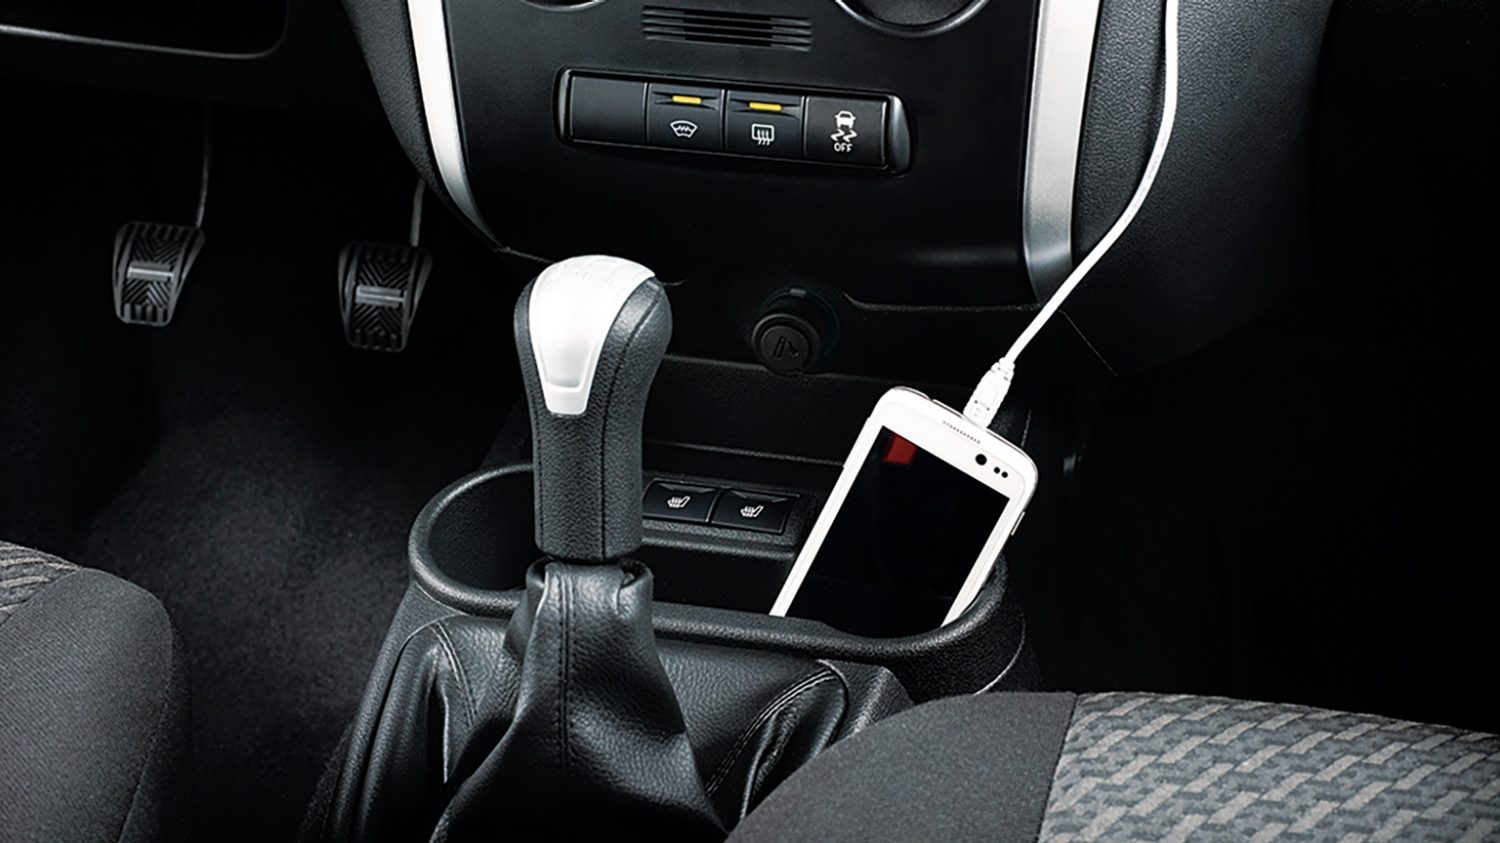 USB Connected Device in Cup Holder